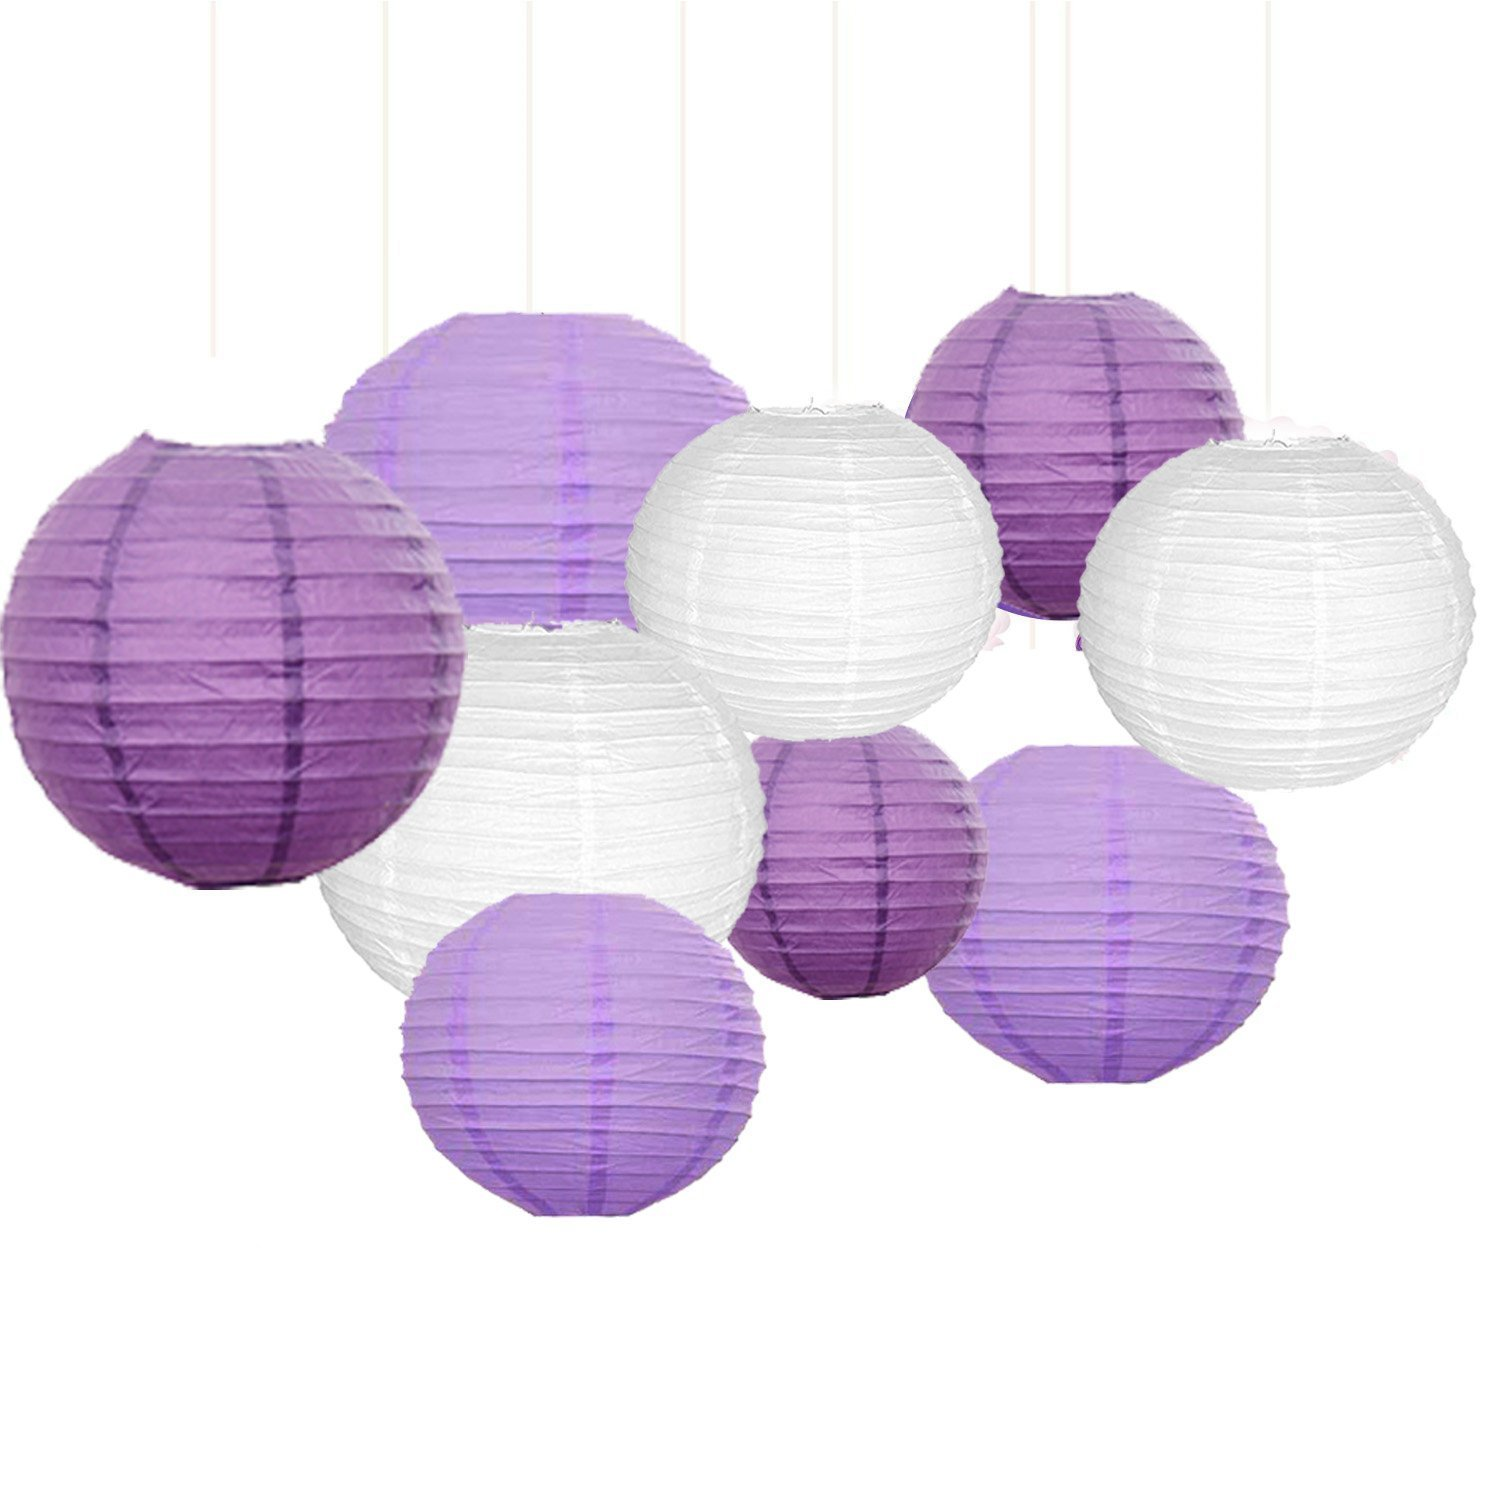 Sopeace 17 PCS 8'' 10'' Lavender Purple Pink White Tissue Paper Pom Pom Flowers and Paper Lanterns Party Decoration by Sopeace (Image #2)